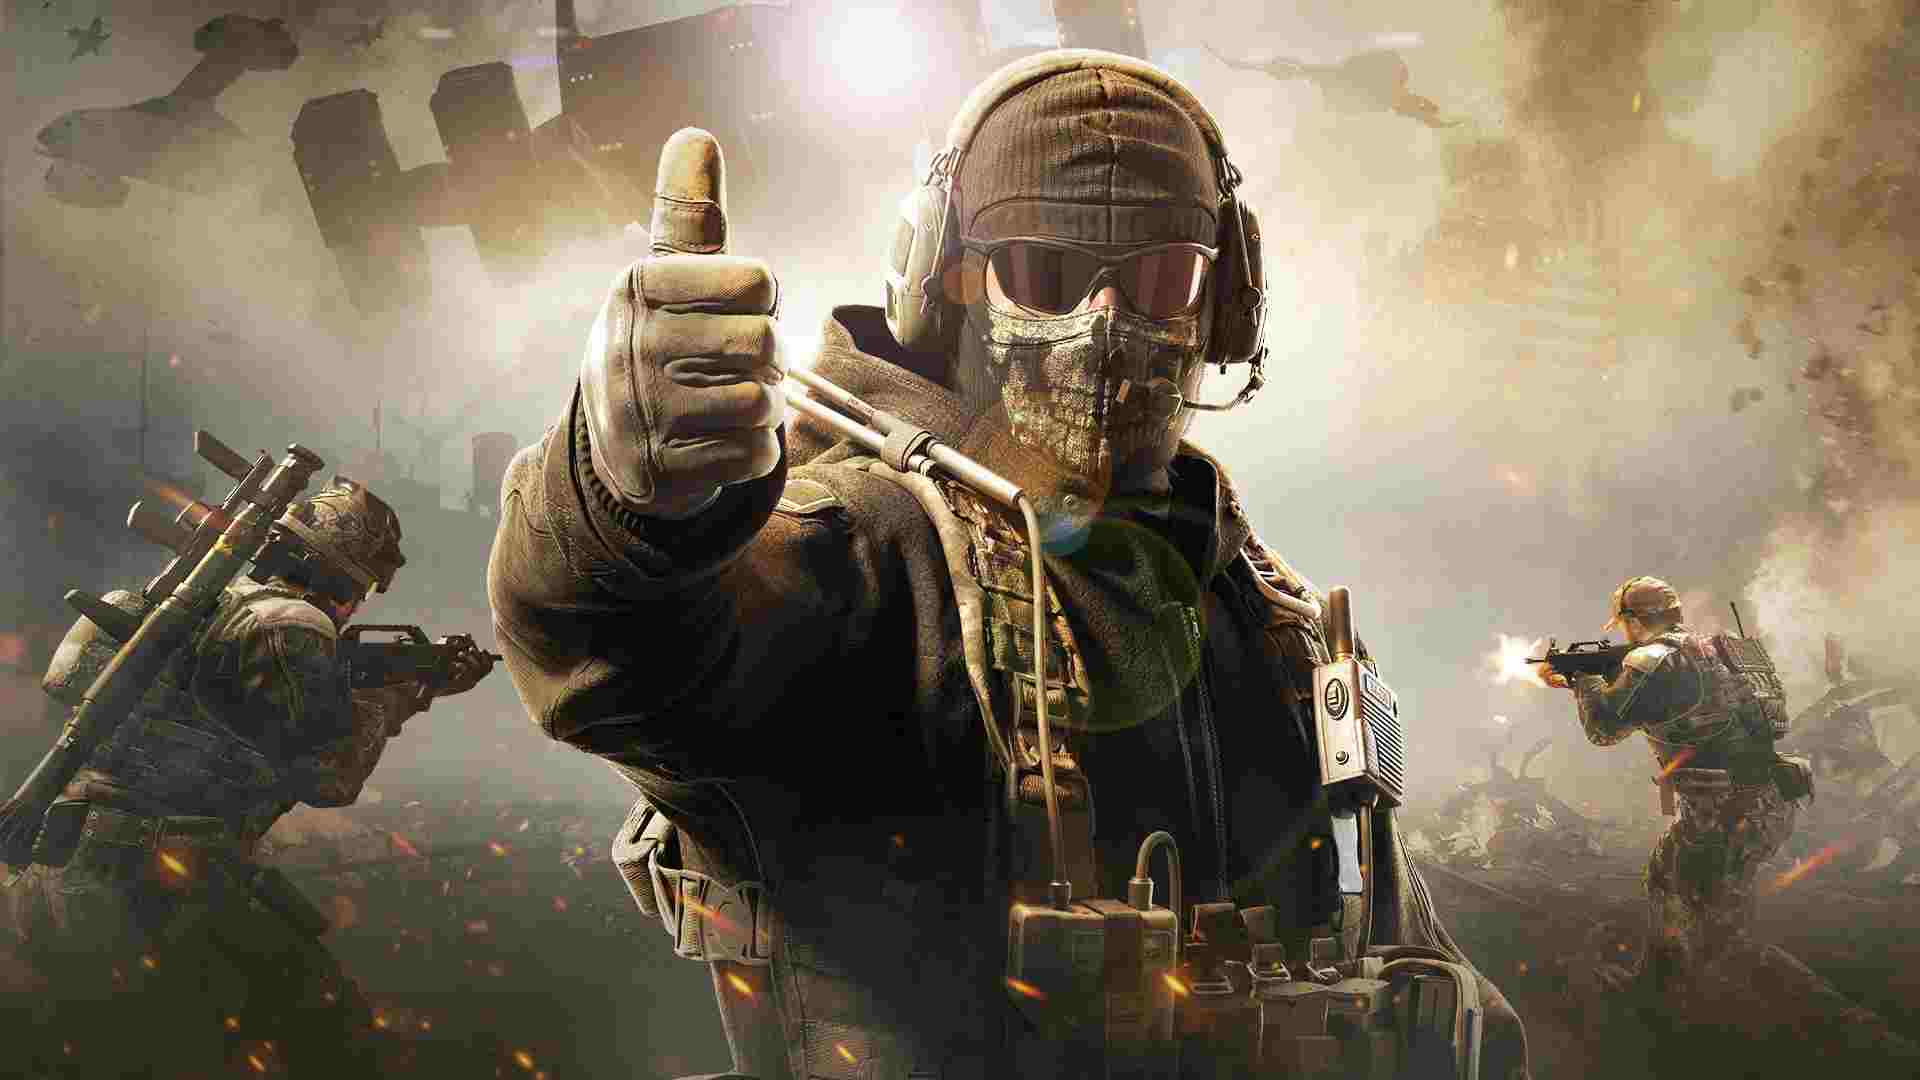 Consigue gratis estas recompensas para Call of Duty Warzone, Modern Warfare, Black Ops Cold War y CoD Mobile